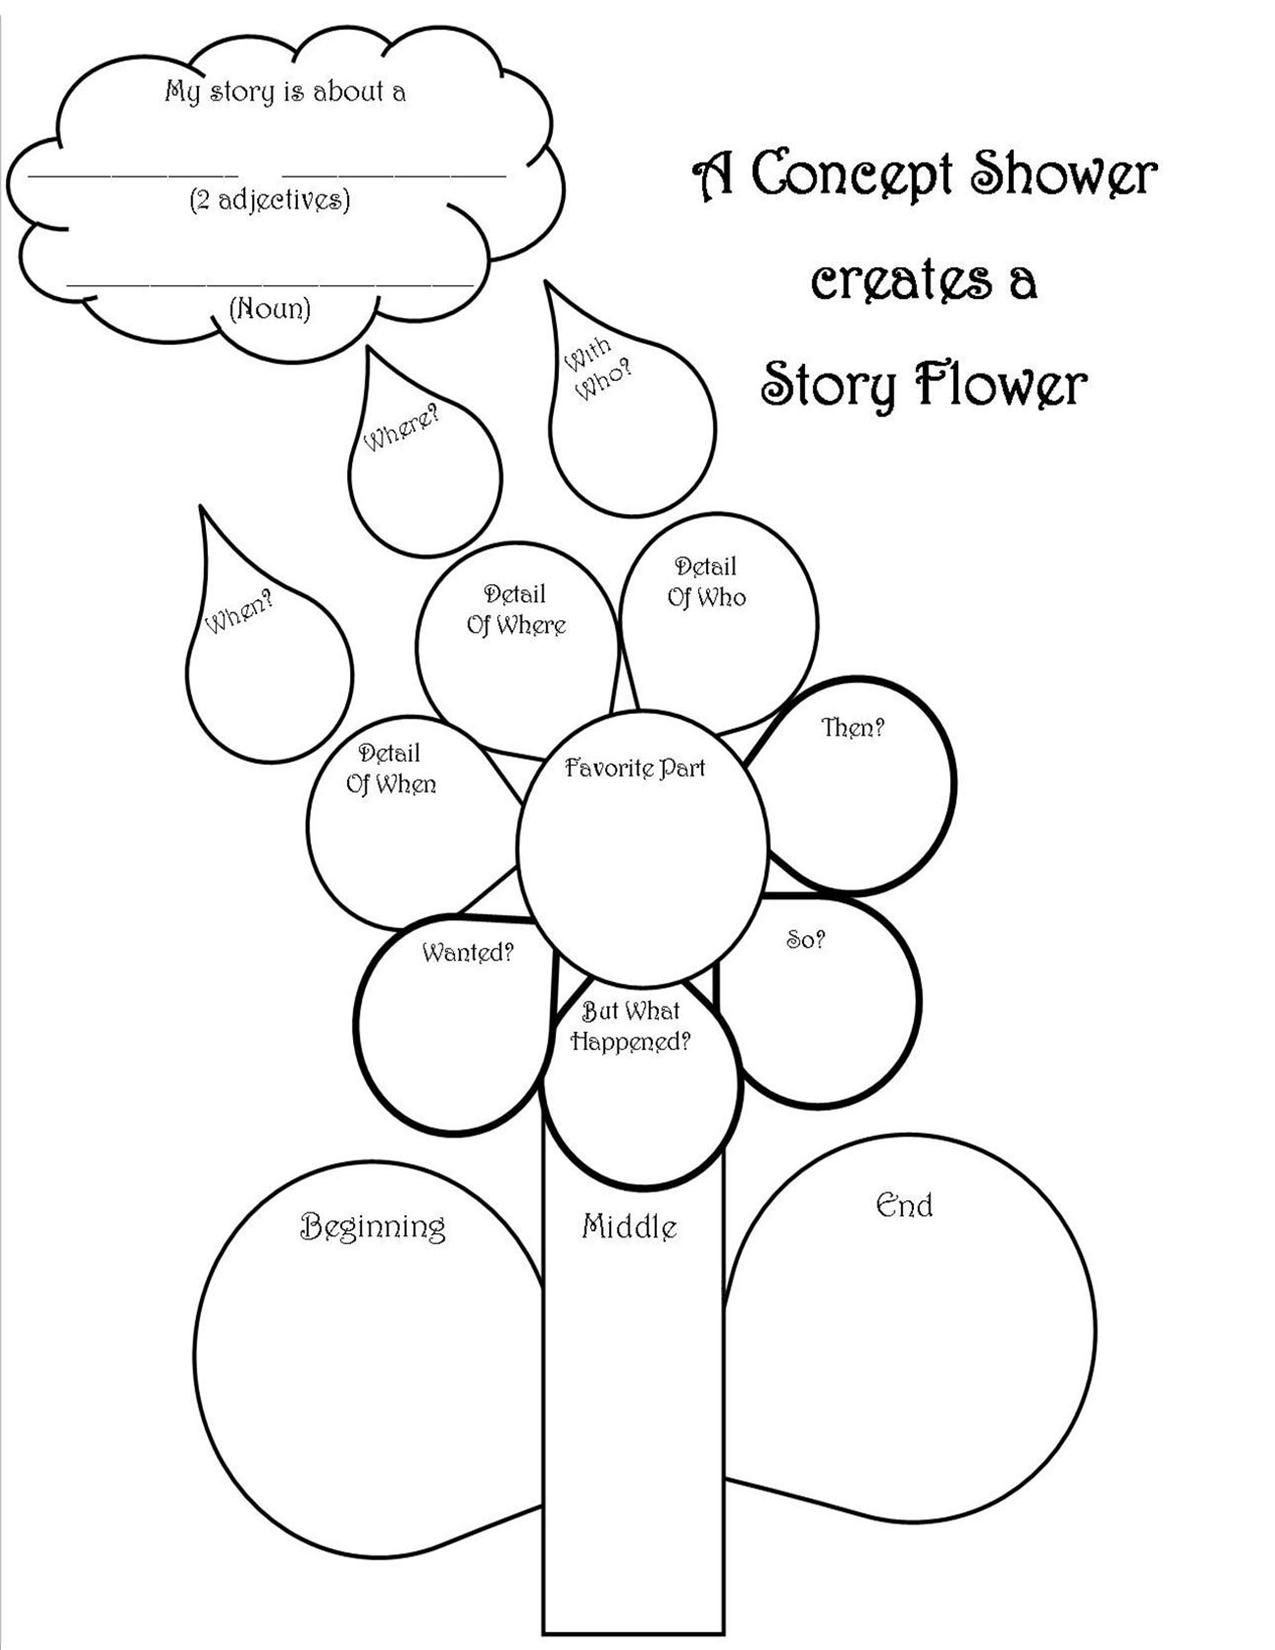 Ou Ow Worksheets 2nd Grade Creative Graphic organizer that Covers the Basics